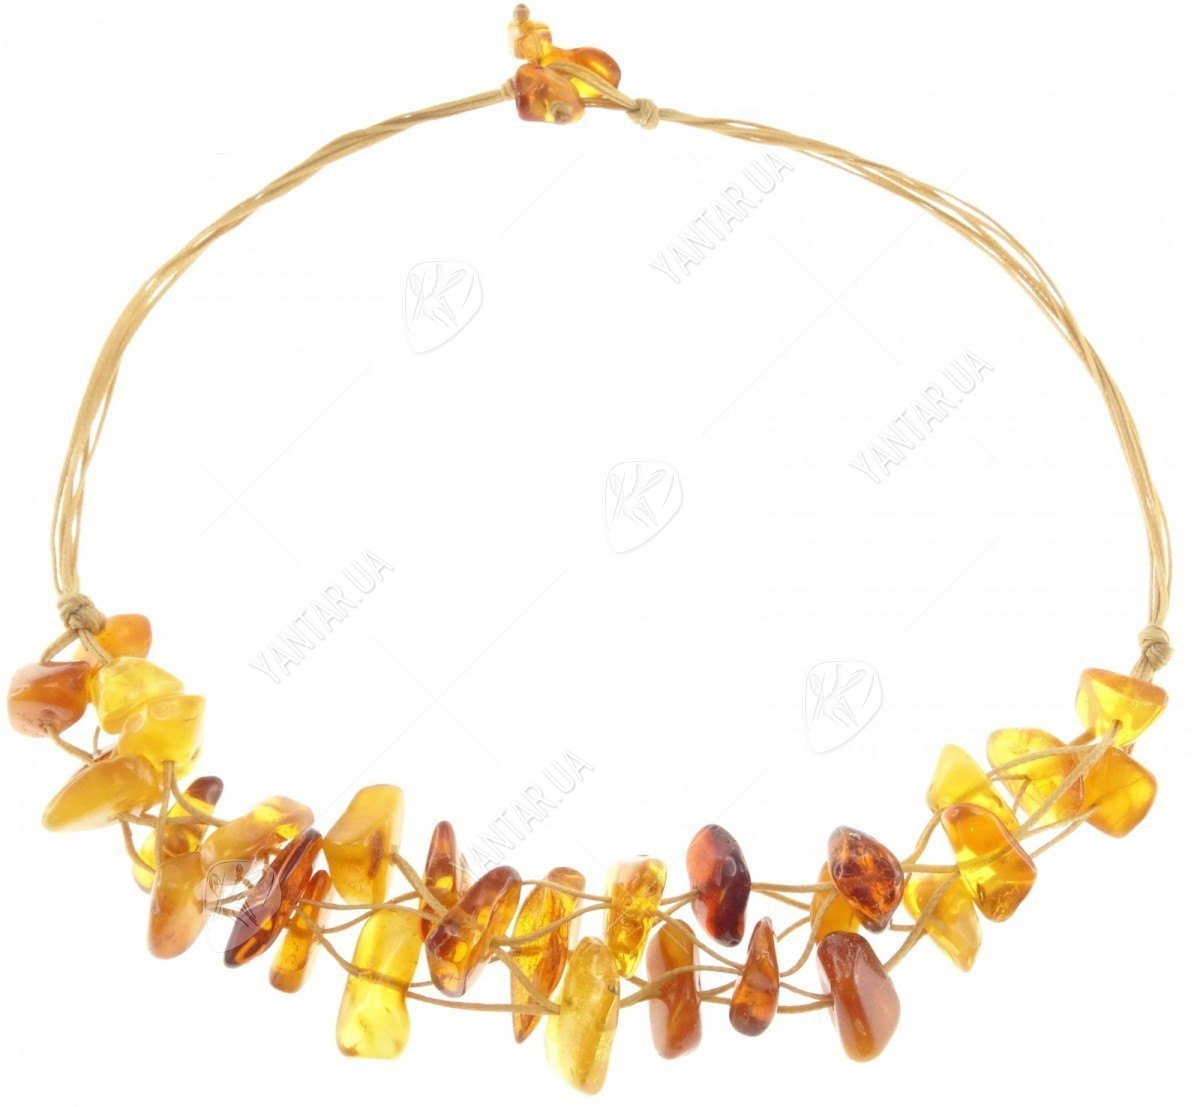 Amber bead necklace Нп-90